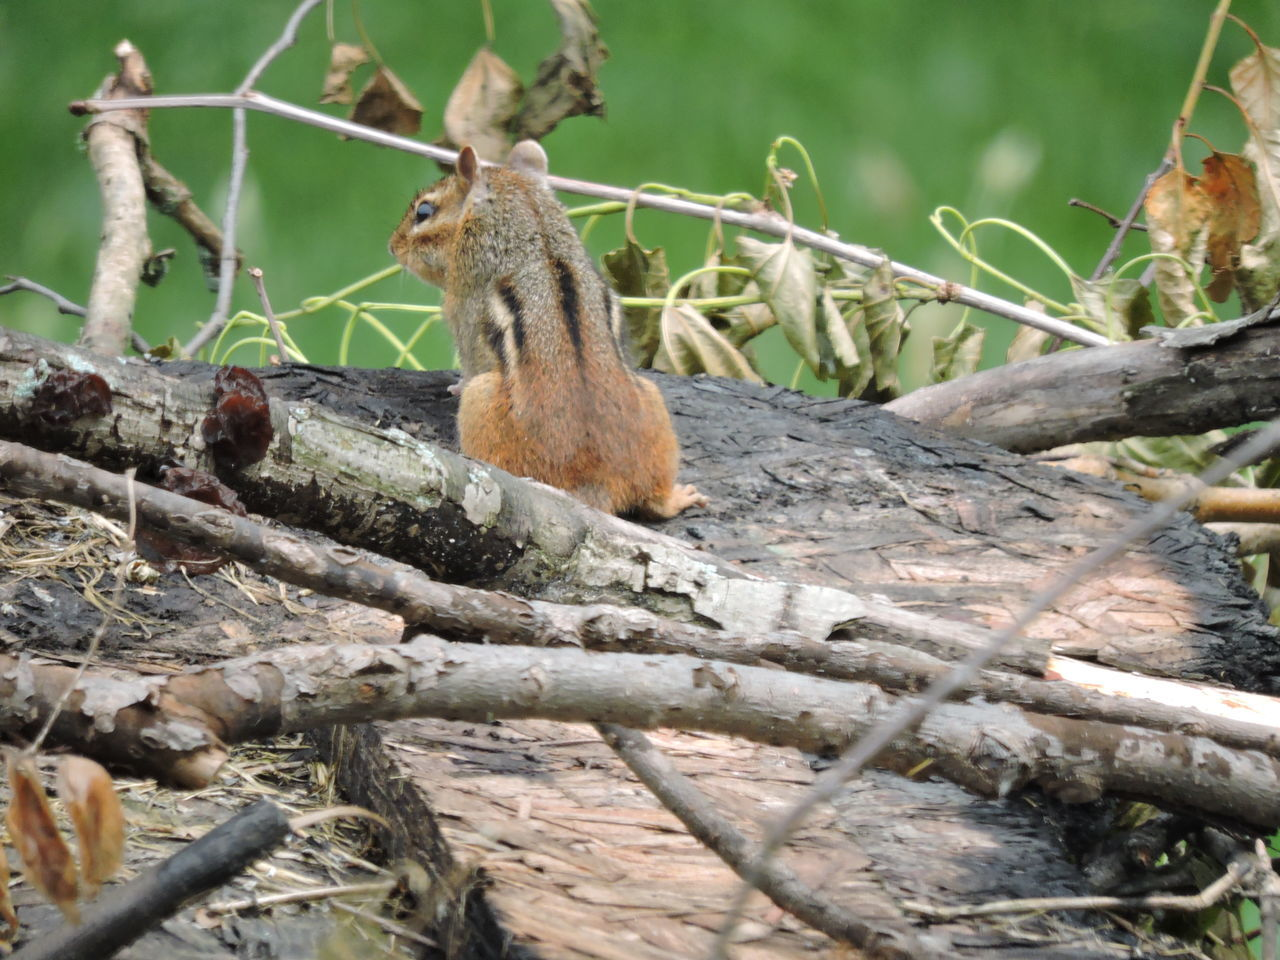 animals in the wild, animal themes, animal wildlife, no people, day, outdoors, one animal, nature, squirrel, branch, close-up, mammal, tree